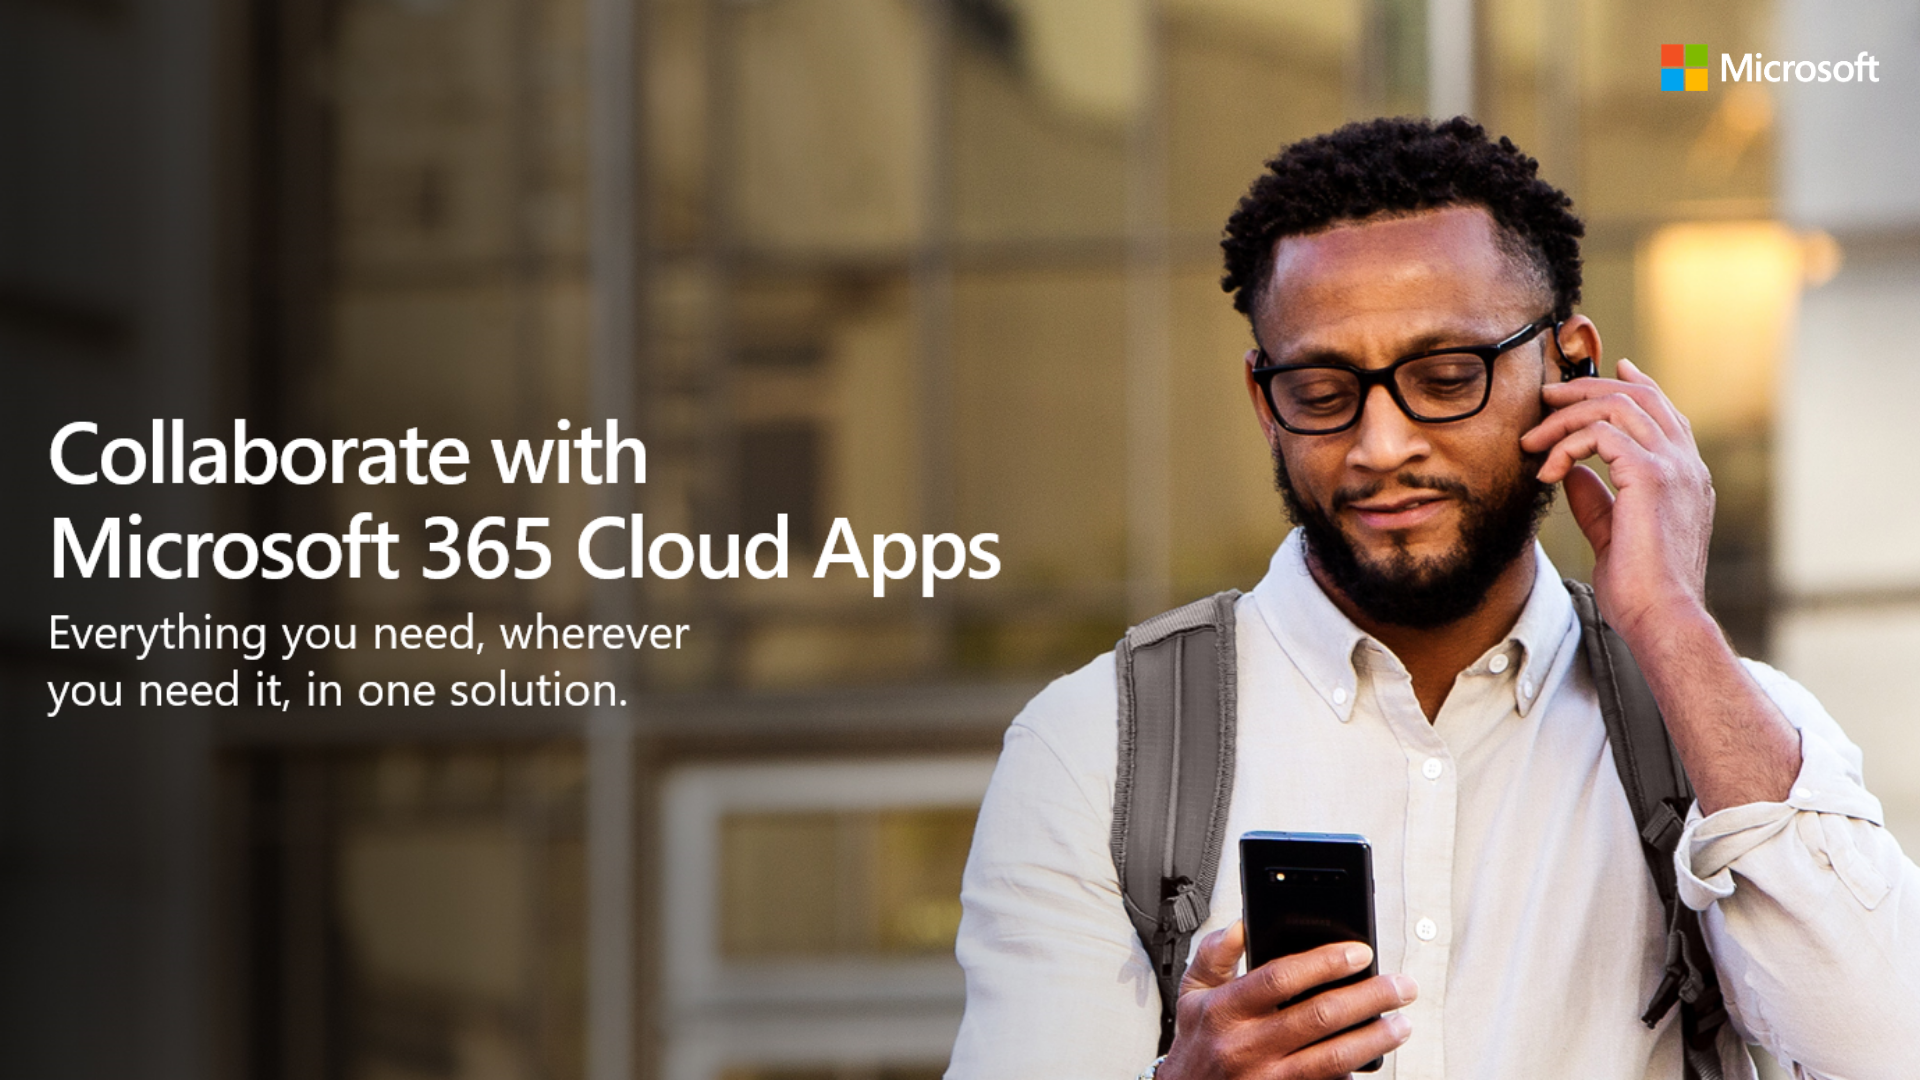 Collaborate with Microsoft 365 Cloud Apps